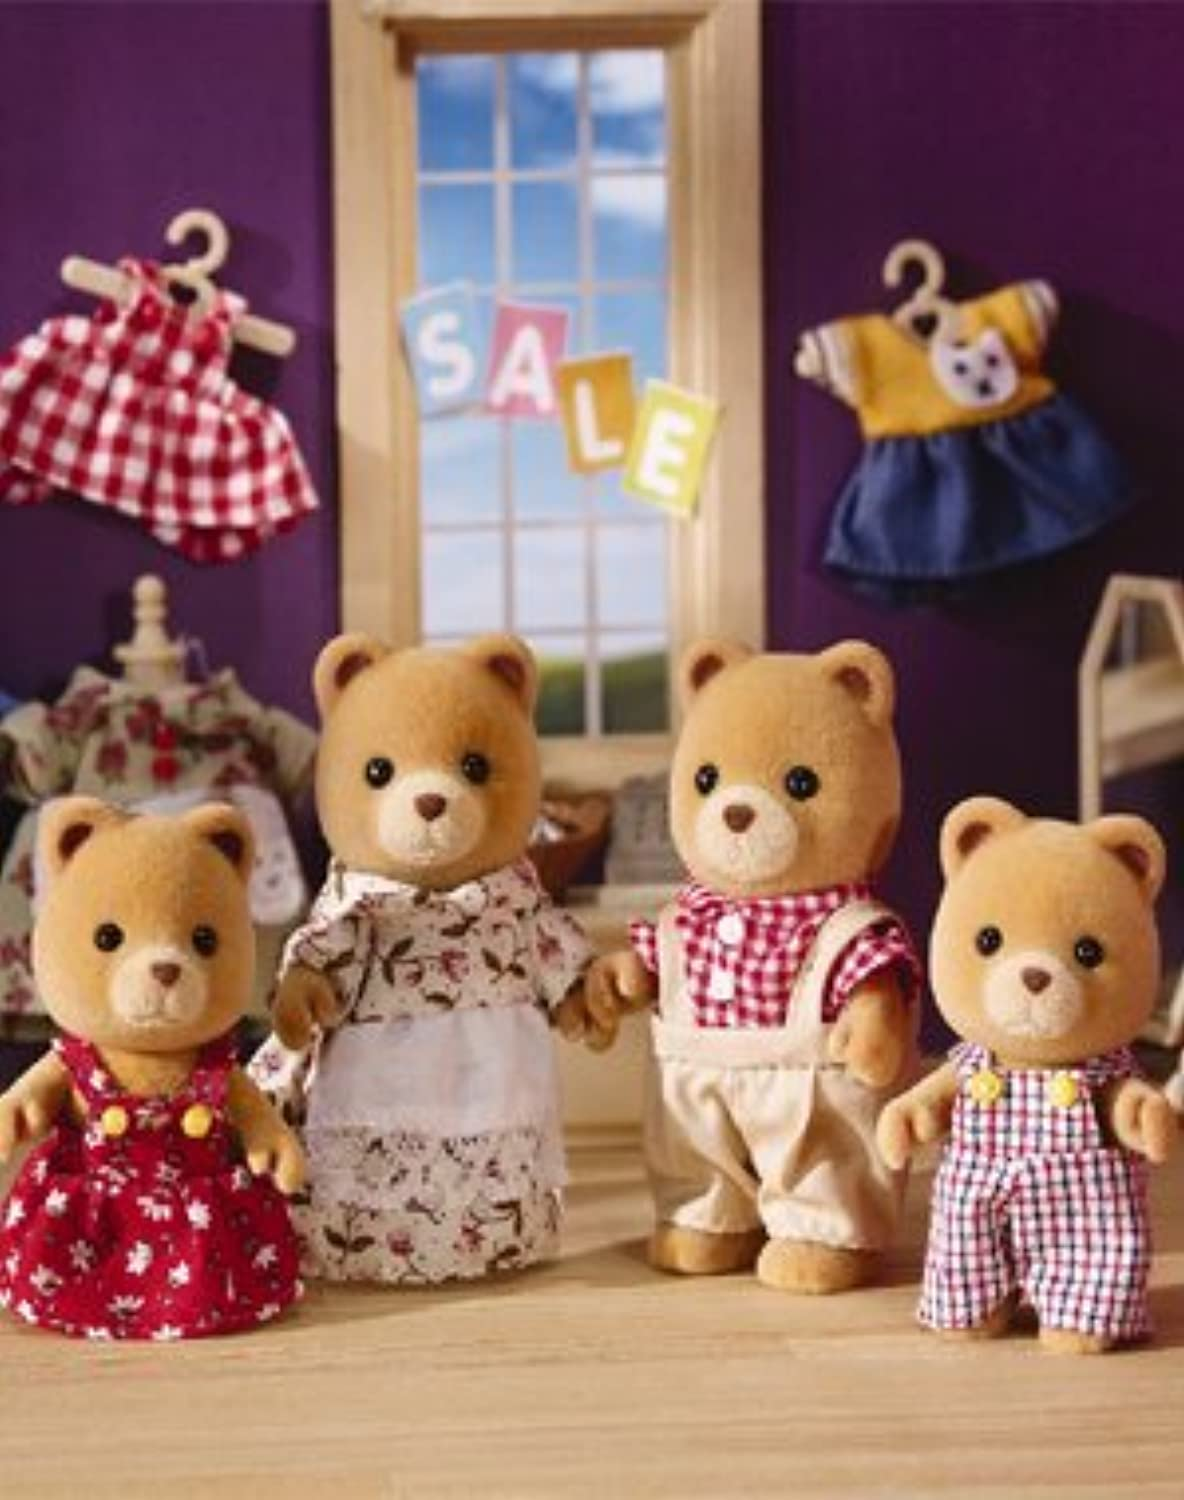 Calico Critters Sugar Bear Family by Calico Critters [並行輸入品]